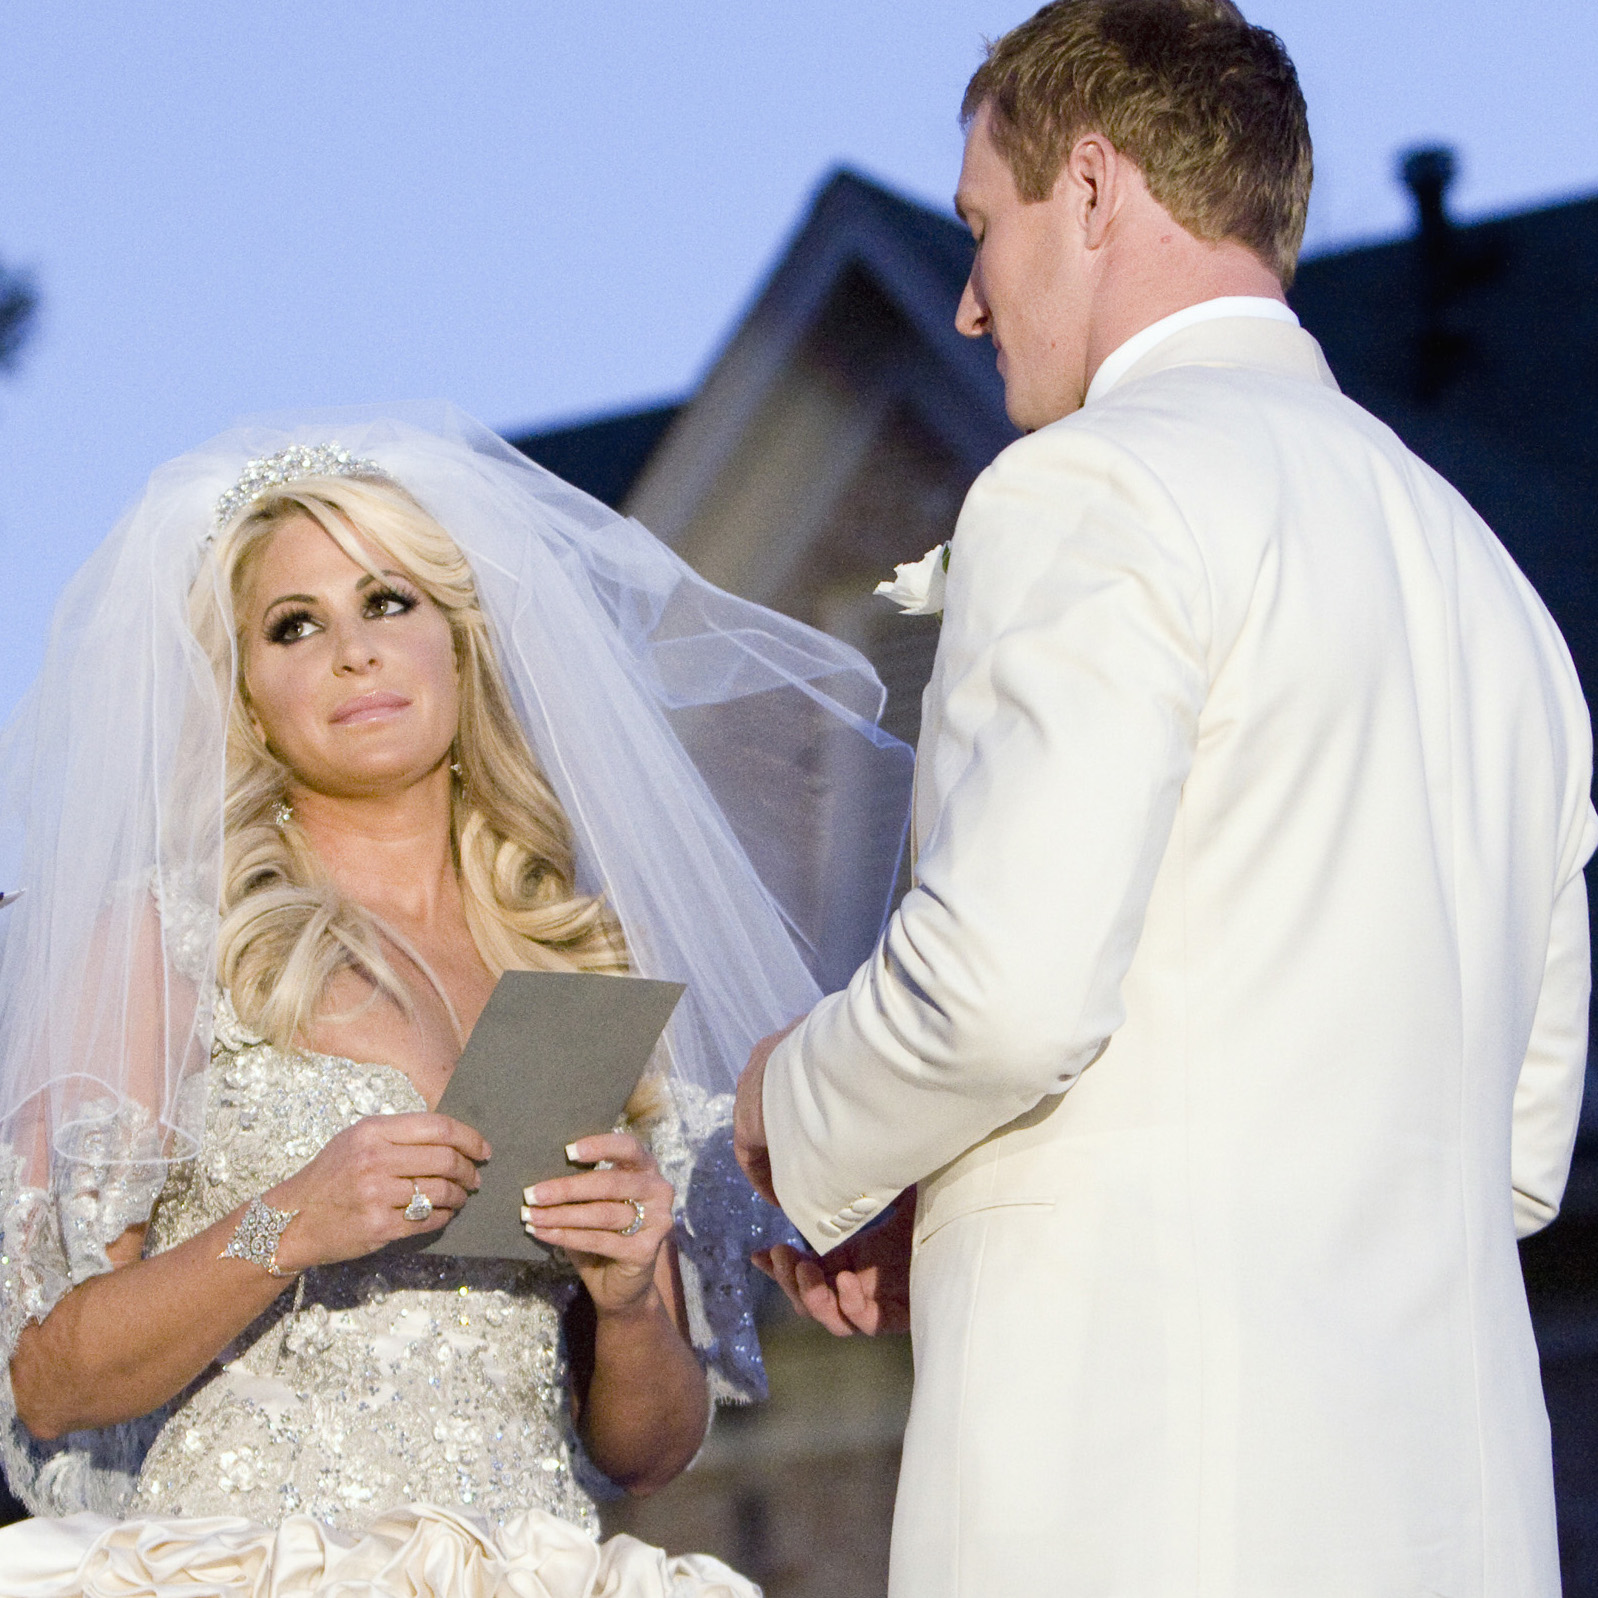 Kim Zolciak's own Baracci gown